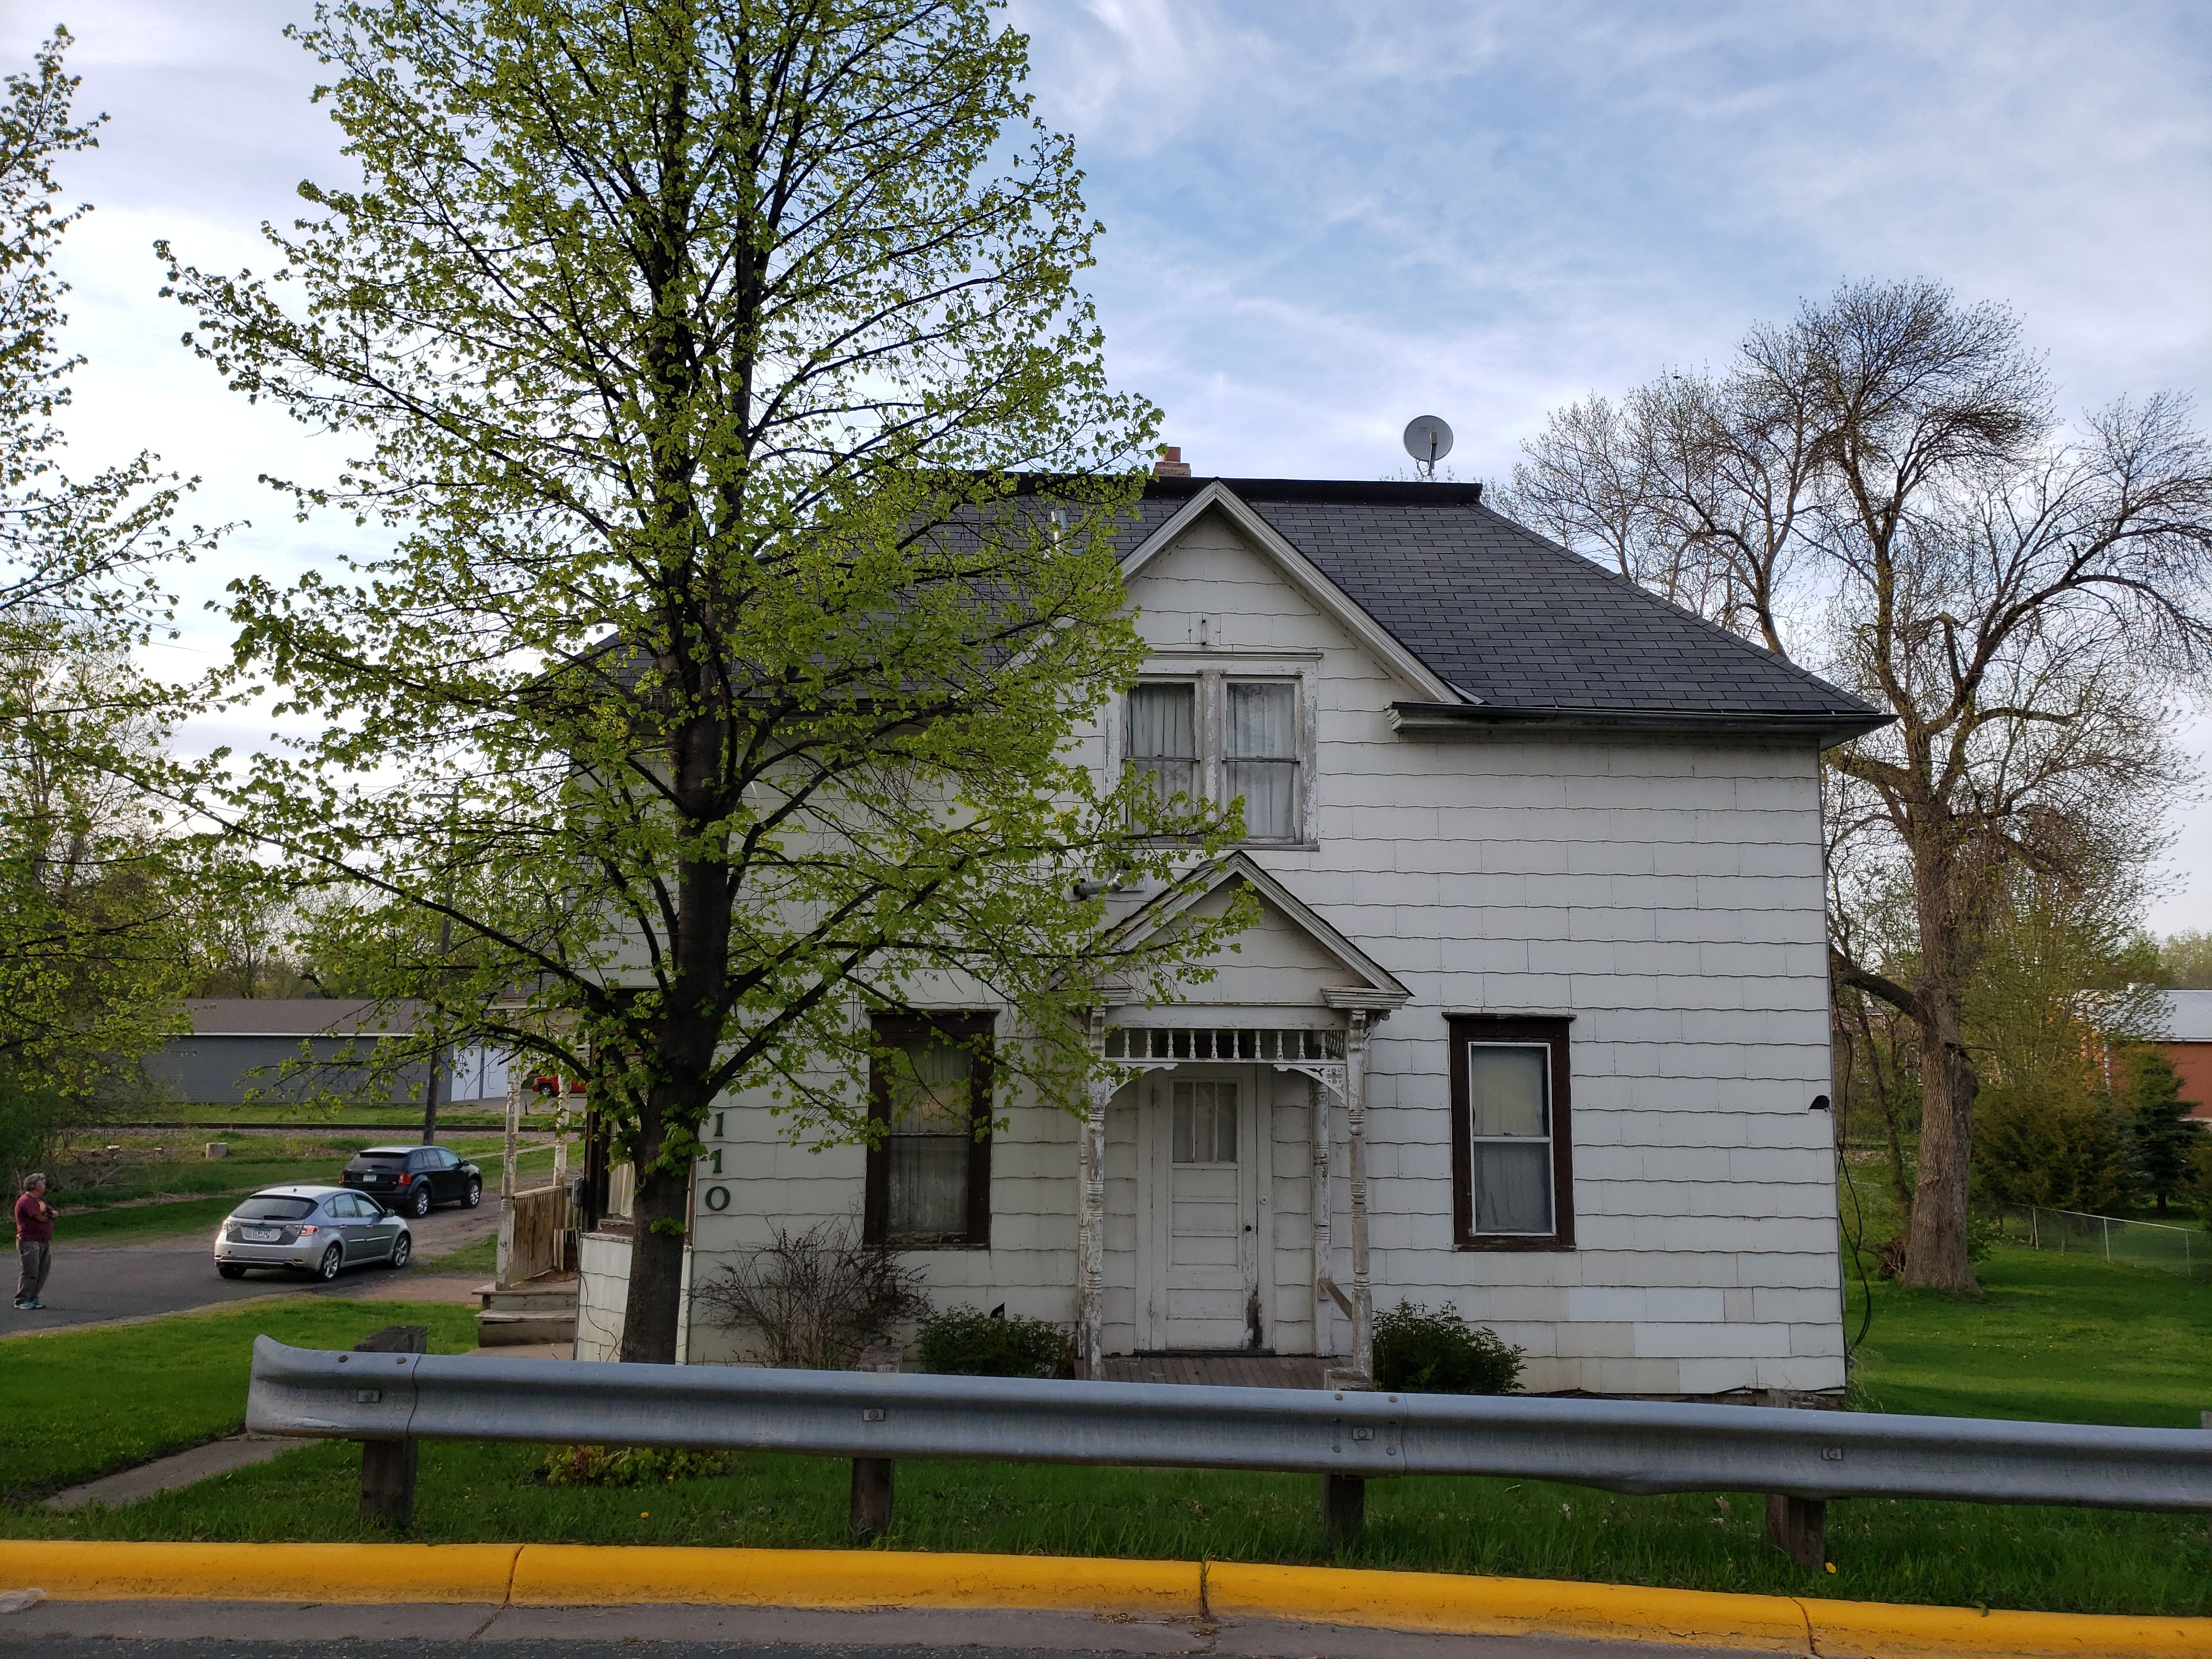 110 Elm Street East, Norwood Young America, MN 55368 (Image - 1) (Image - 1)